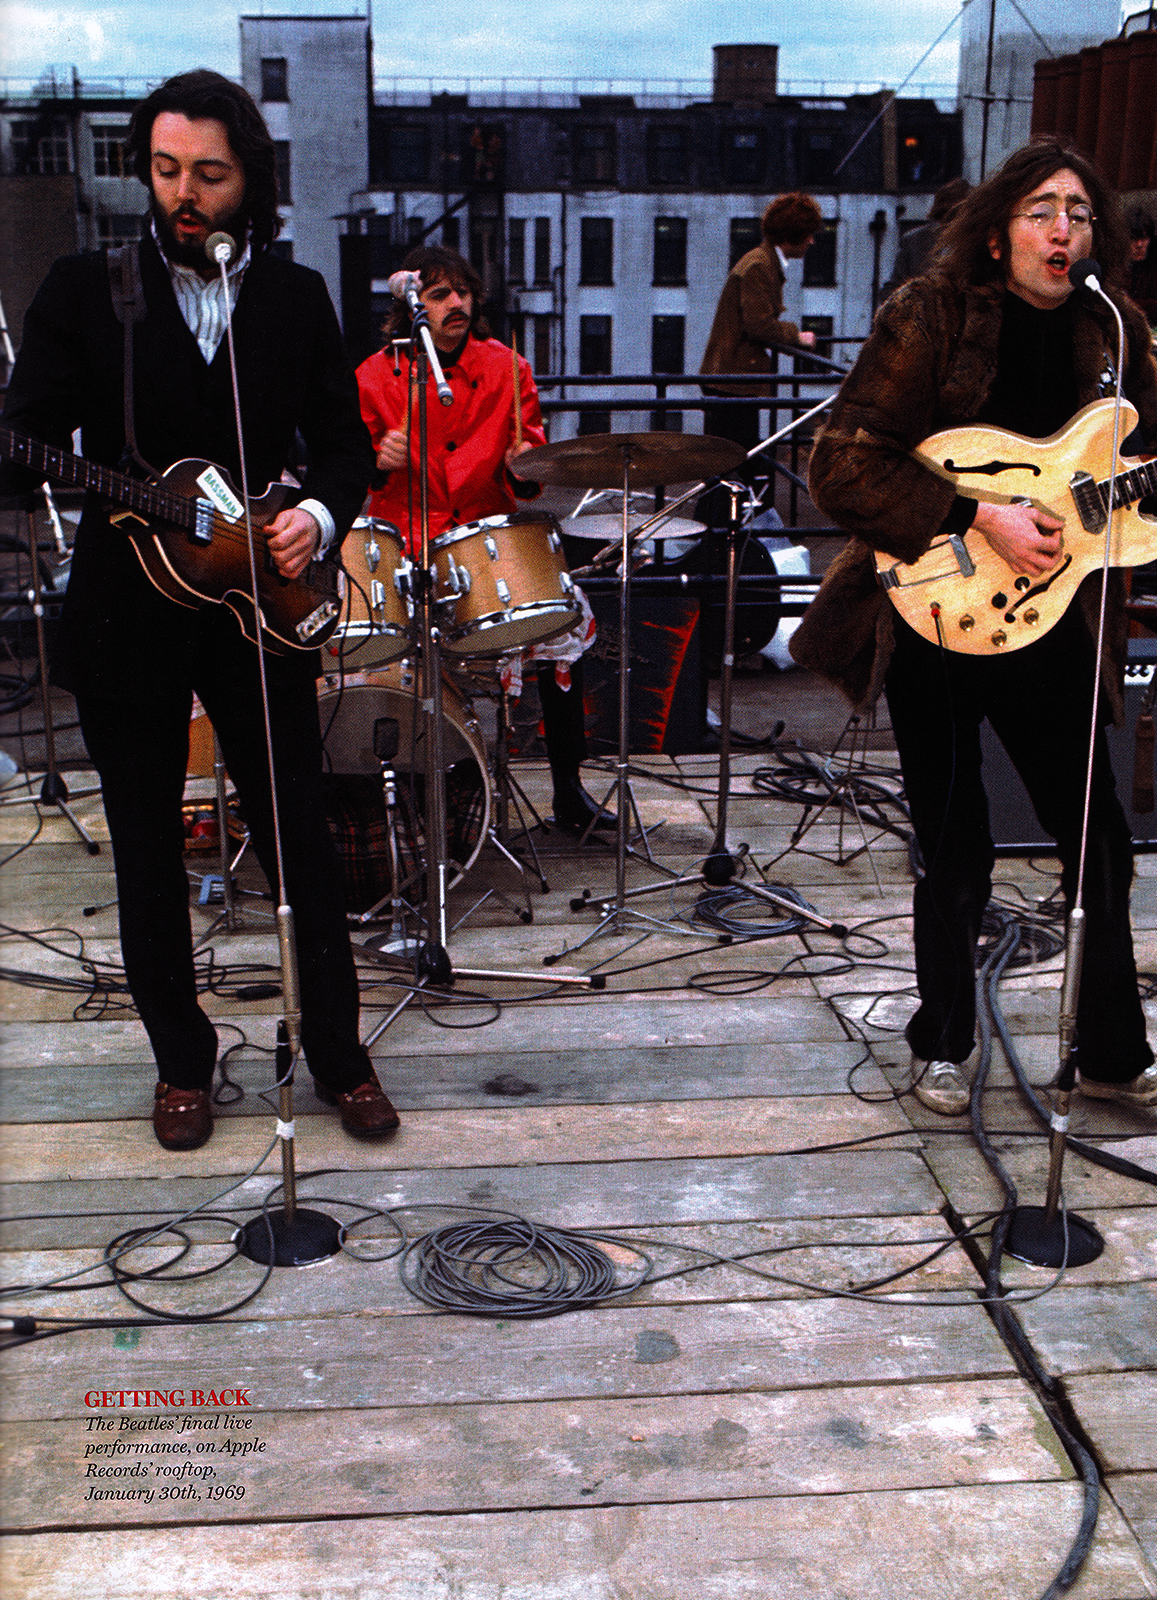 The Beatles' final live performance, on Apple Records ...